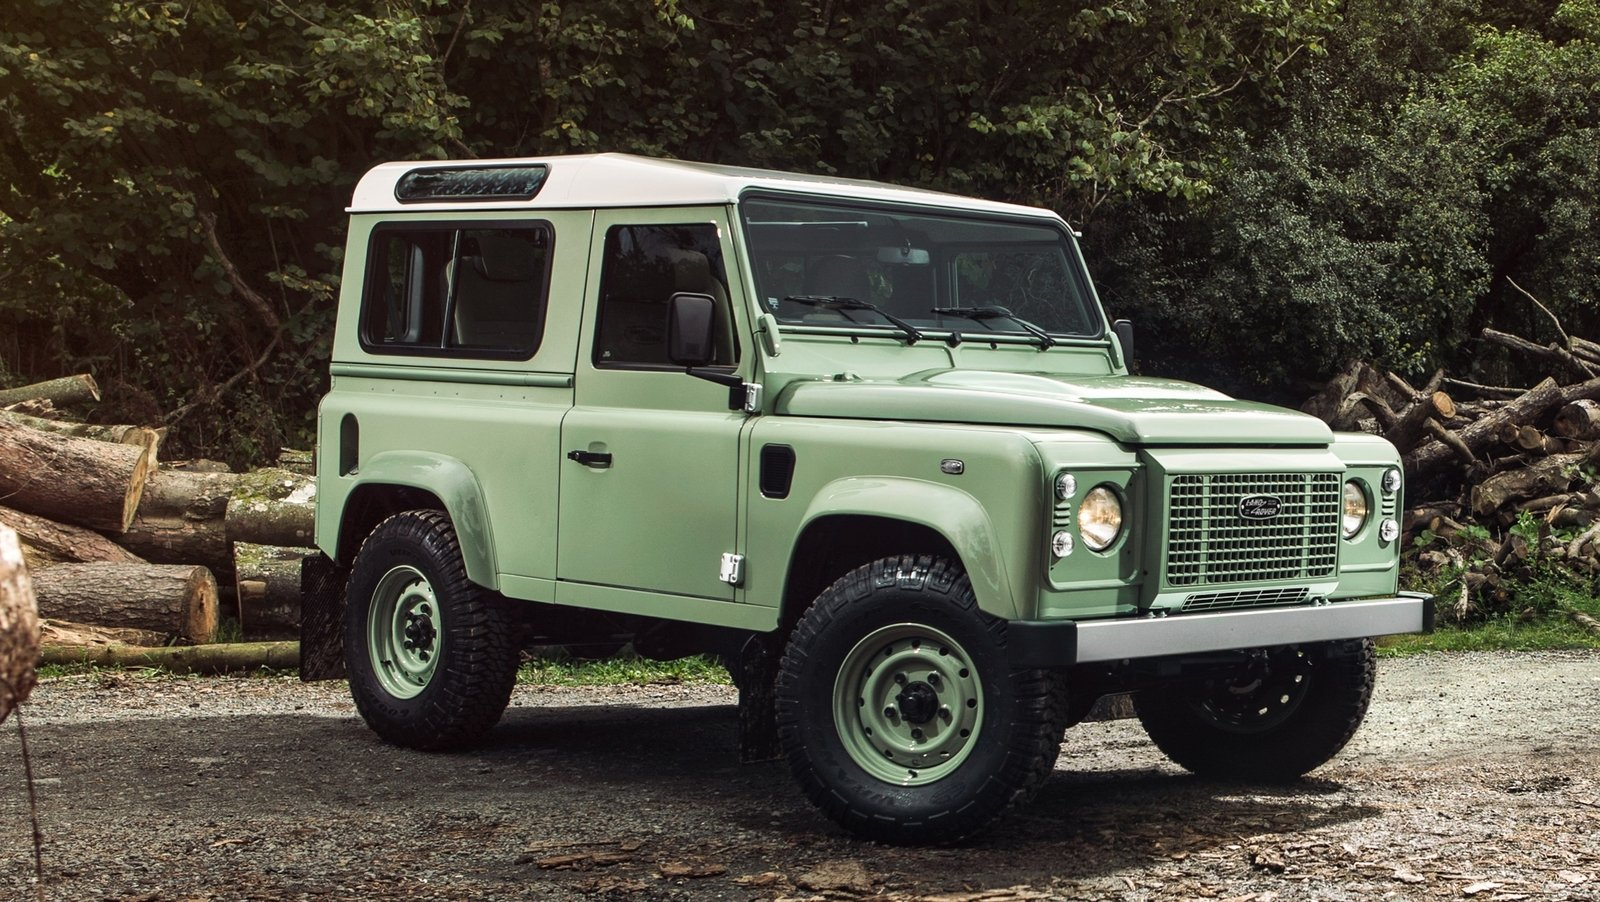 2019 Land Rover Defender photo - 5